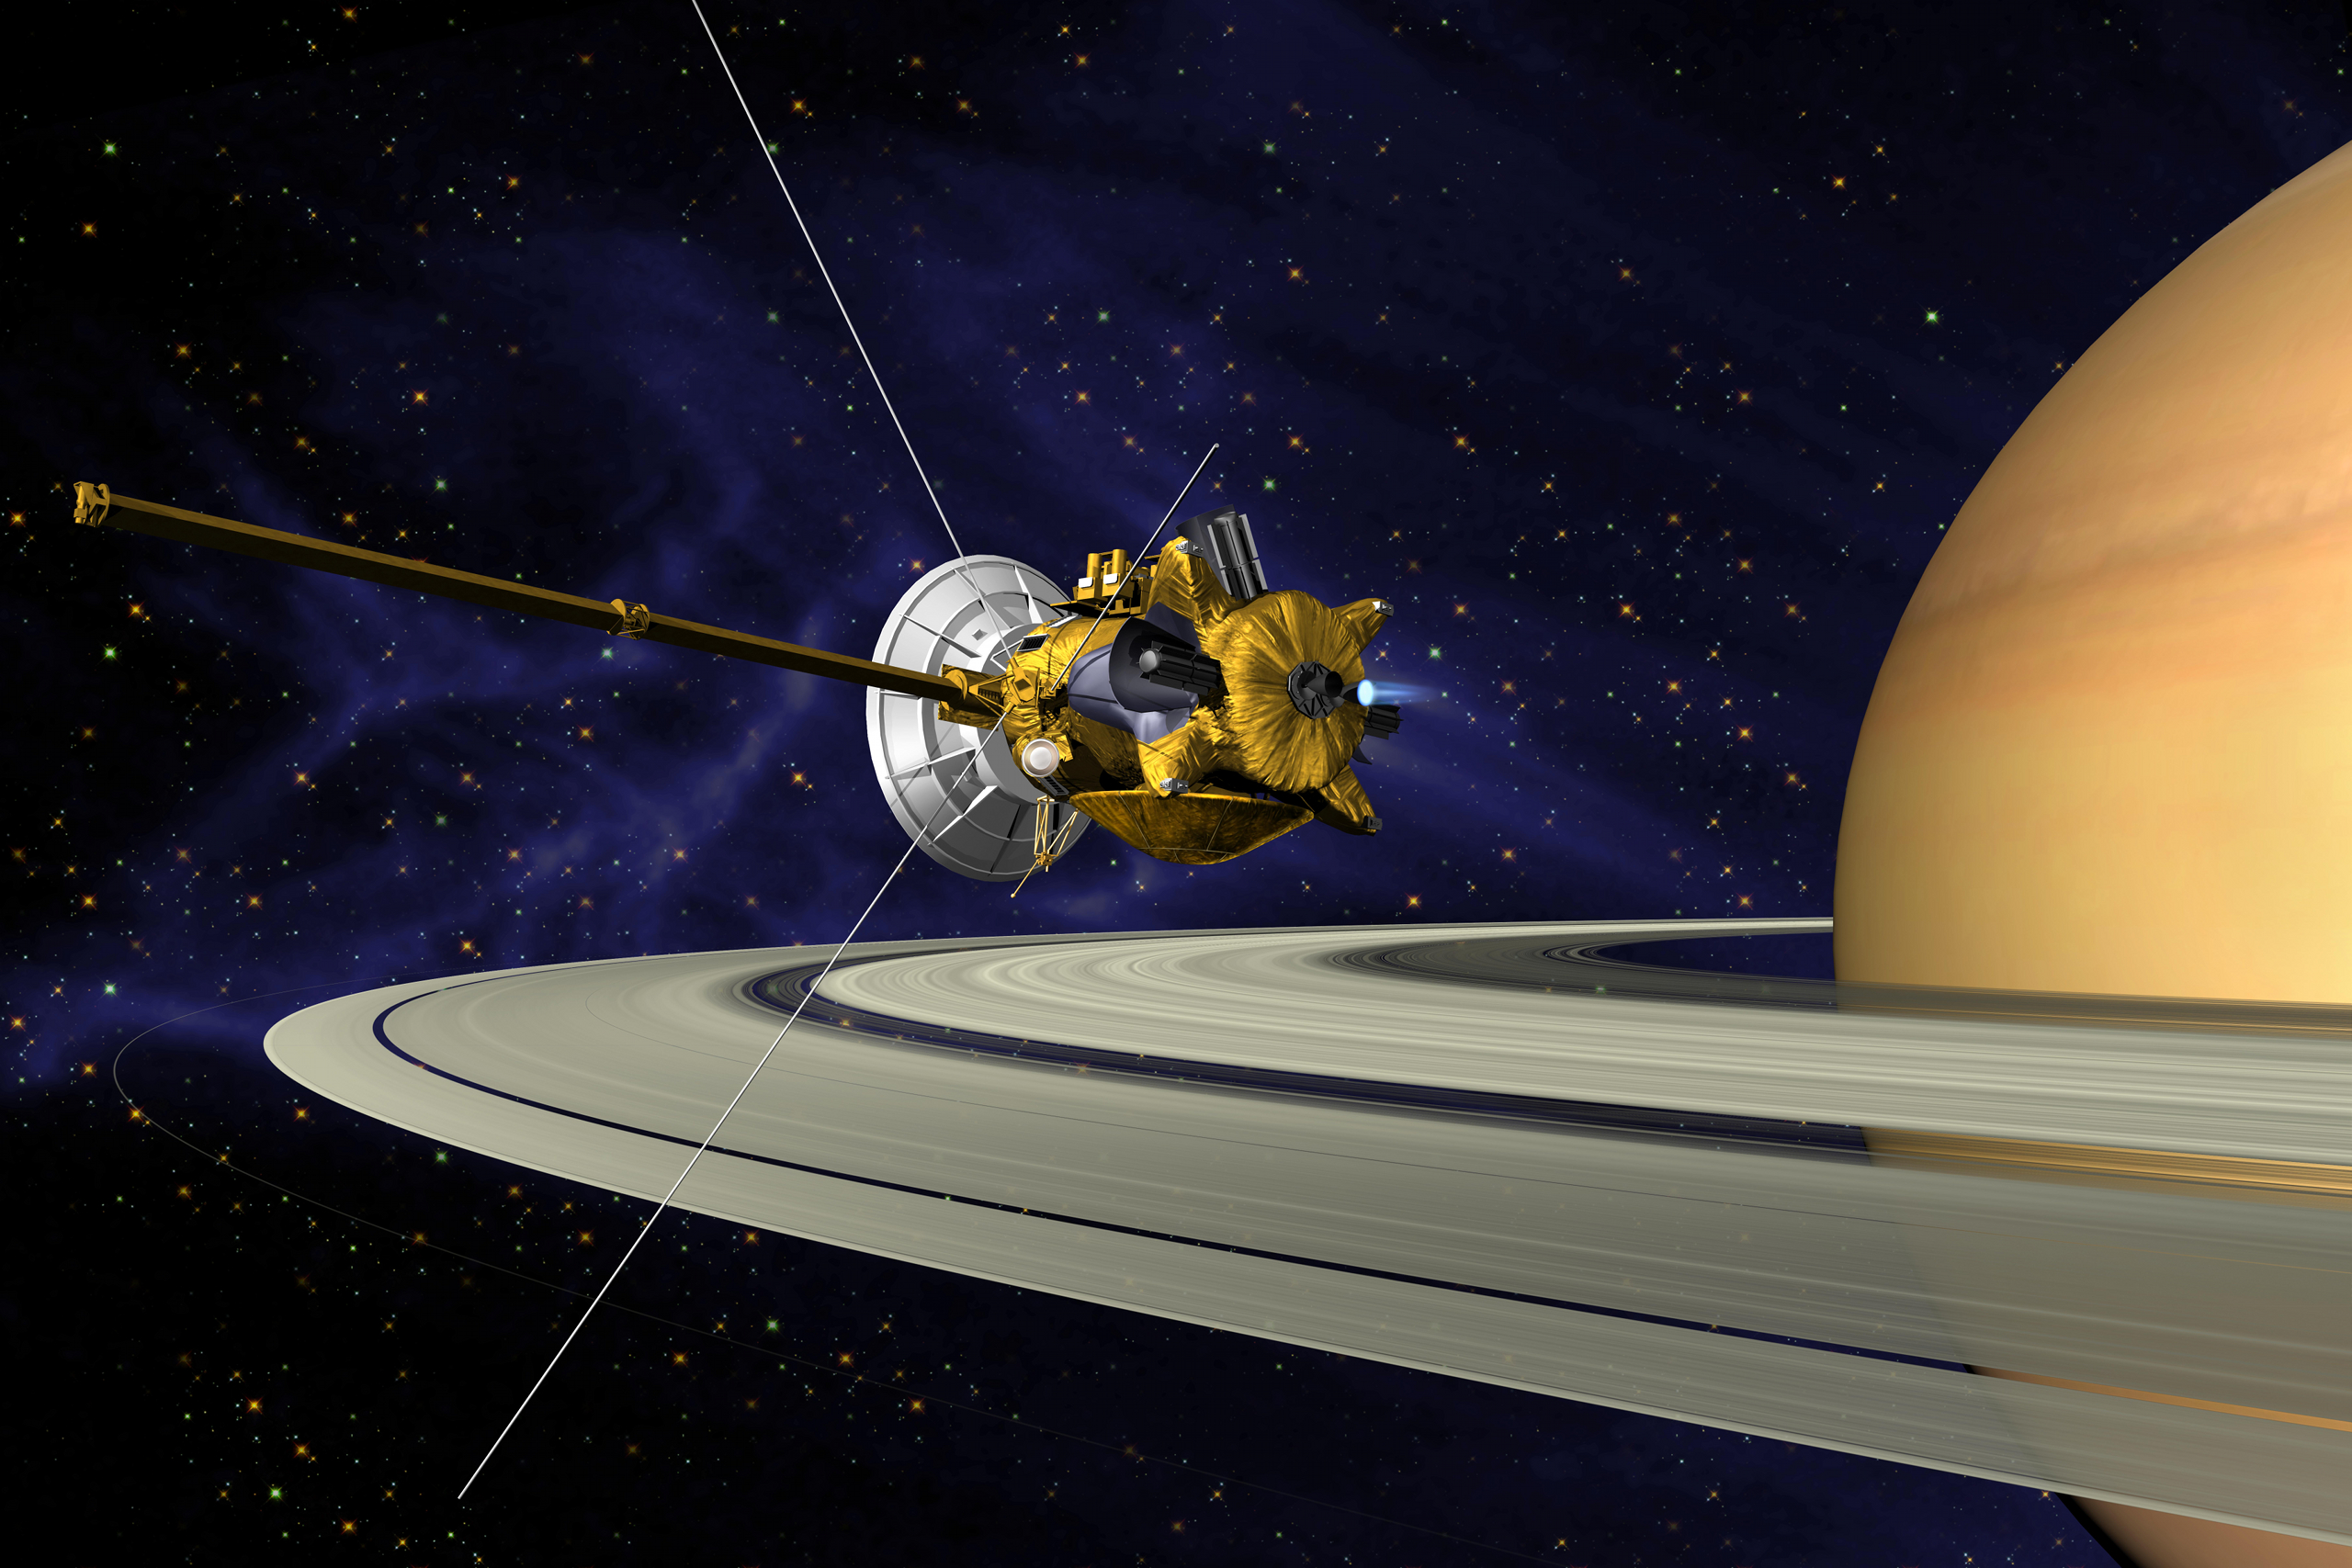 An artist's interpretation of the Cassini spacecraft maneuvering close enough to graze Saturn's rings.